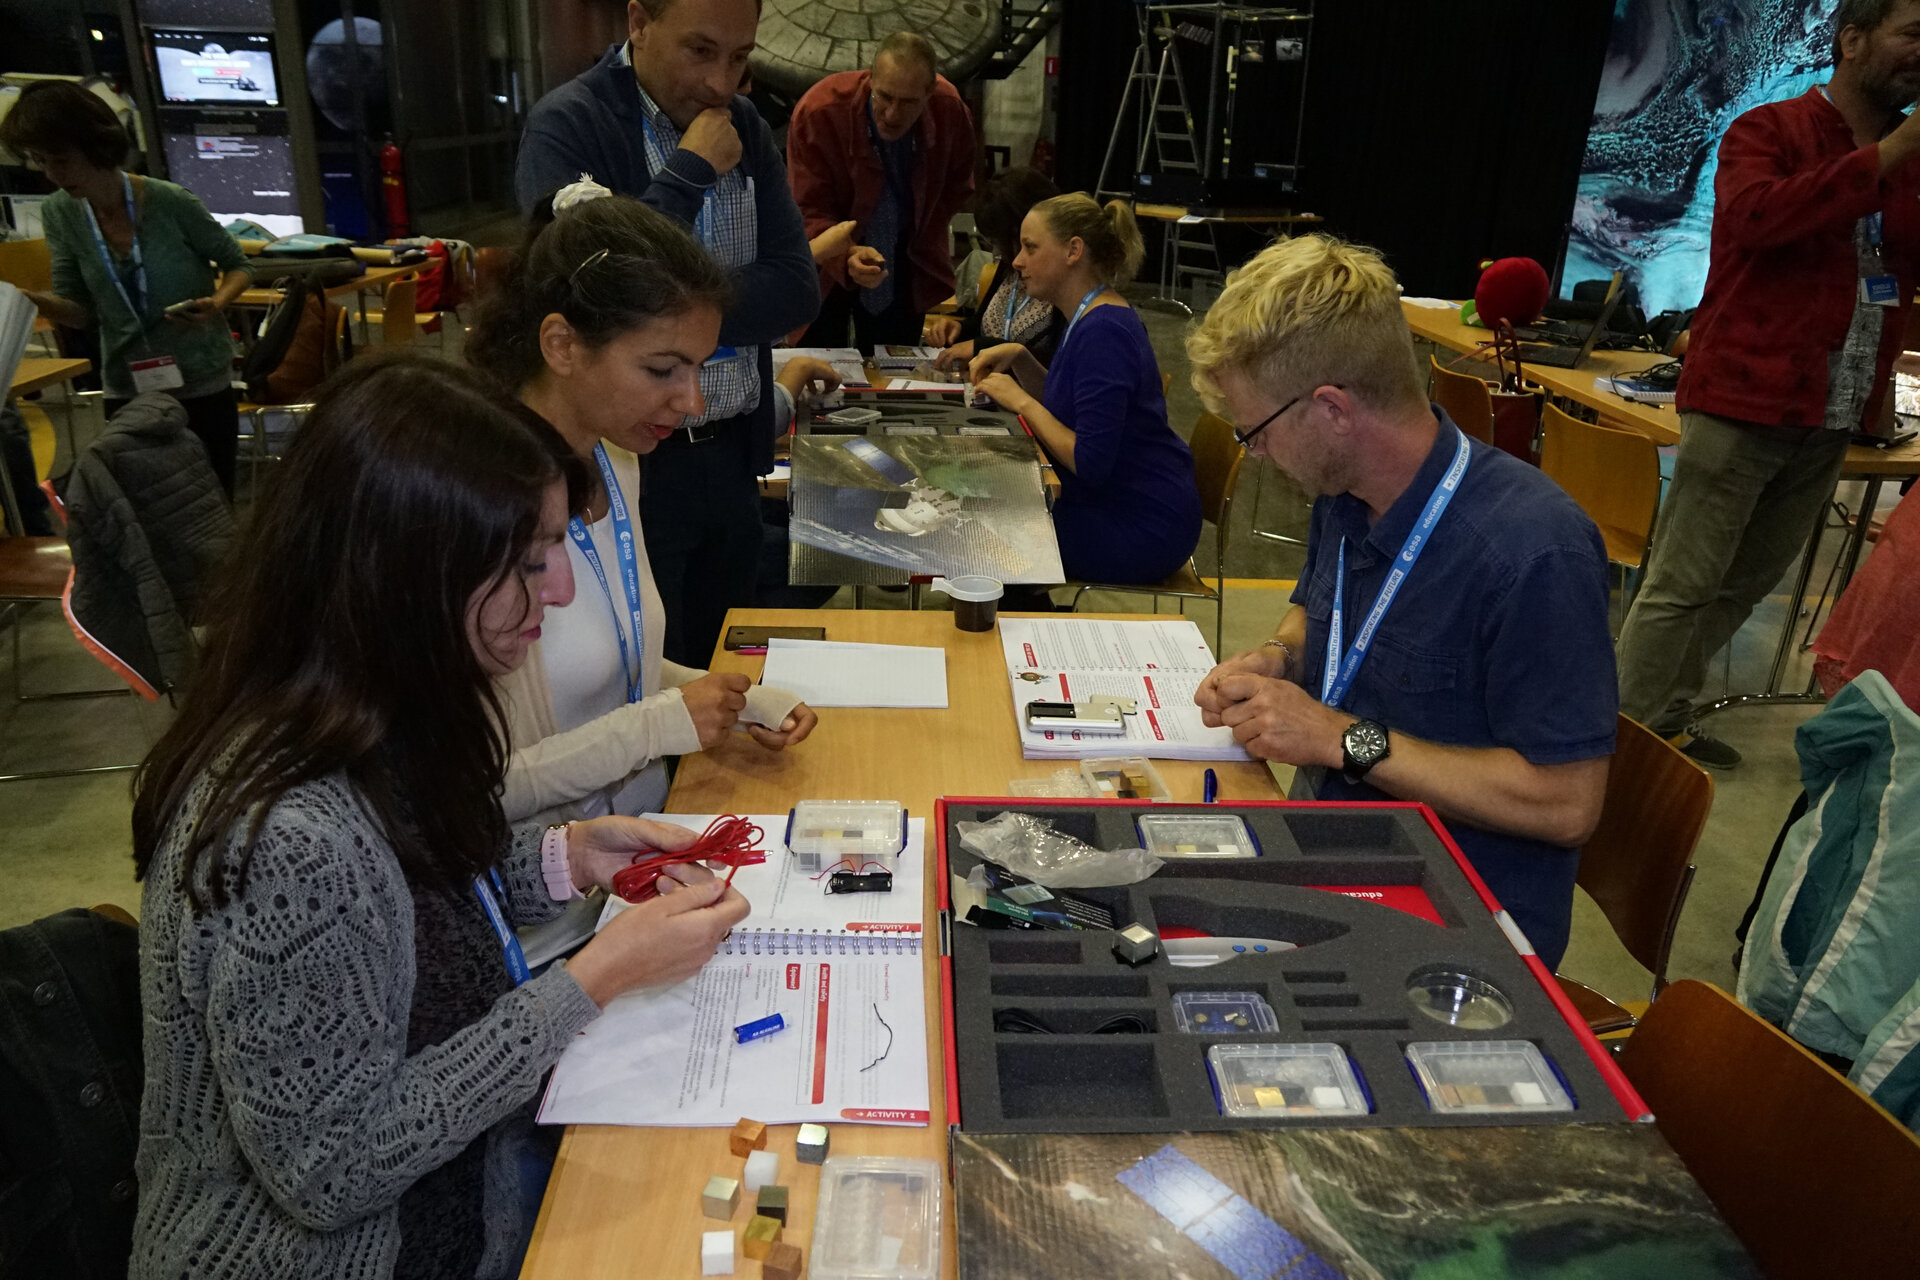 Primary school teachers testing the spacecraft materials kit